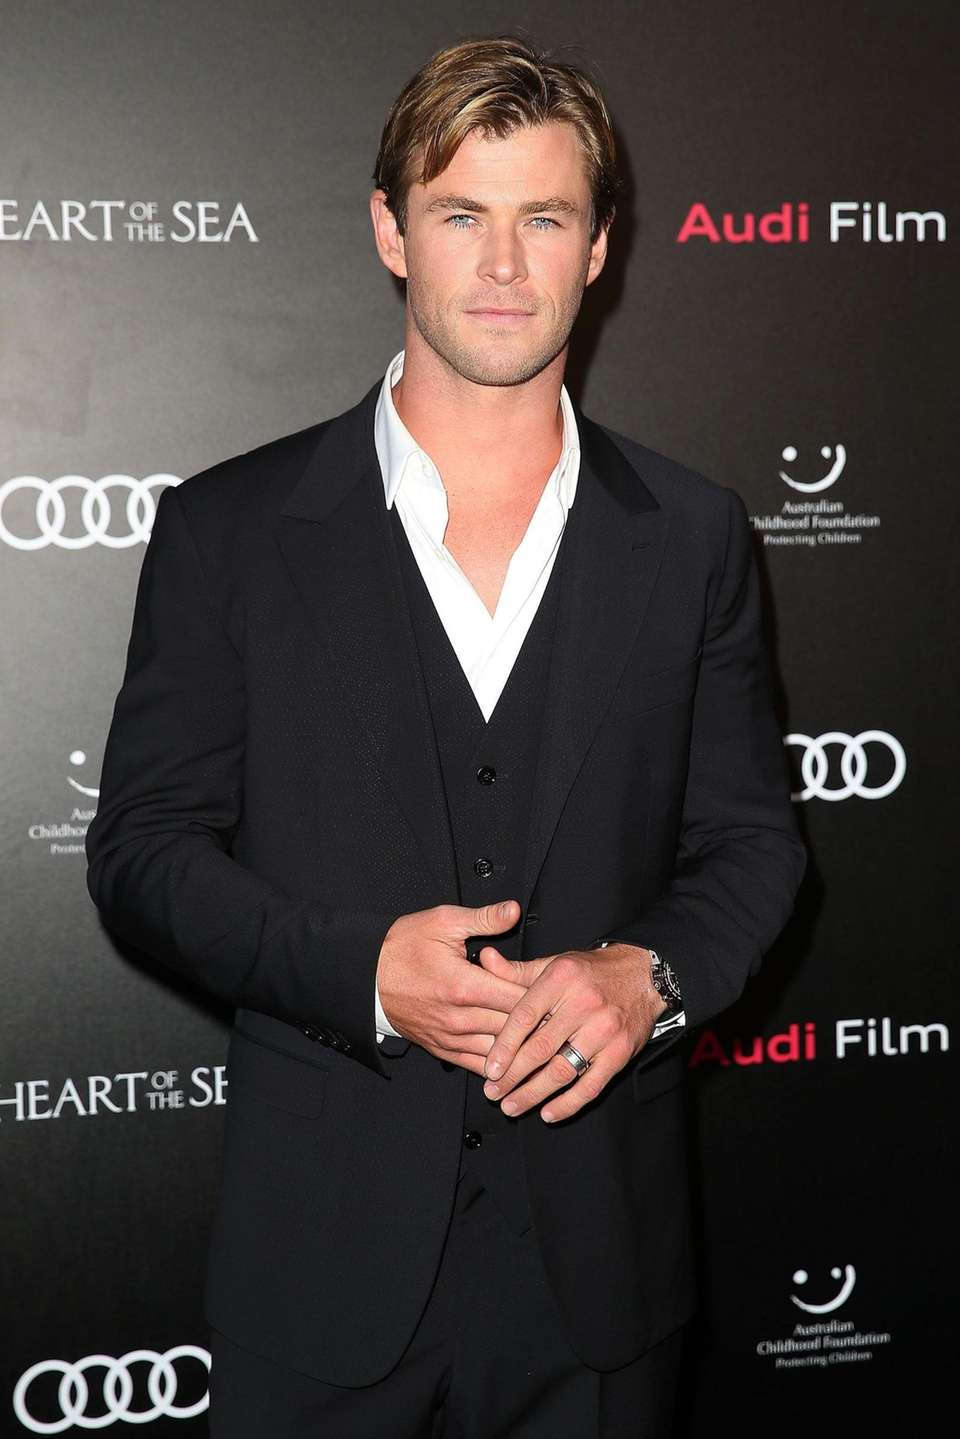 Chris Hemsworth arrives ahead of the Audi Film